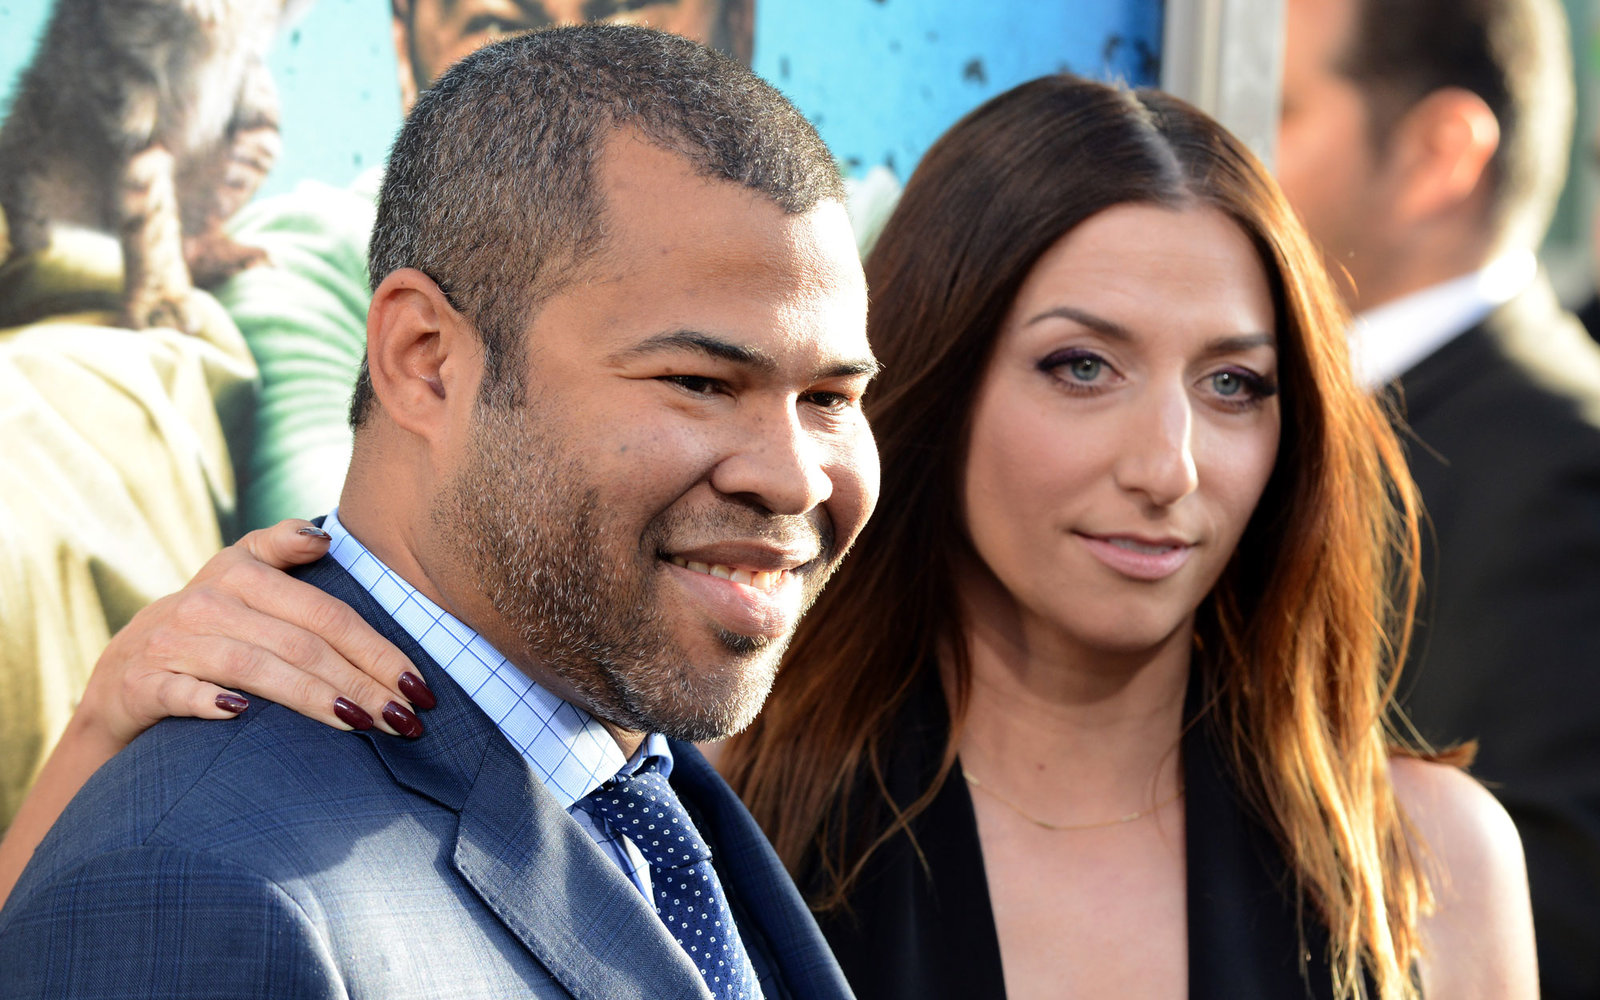 Jordan Peele Denied Access to Travel